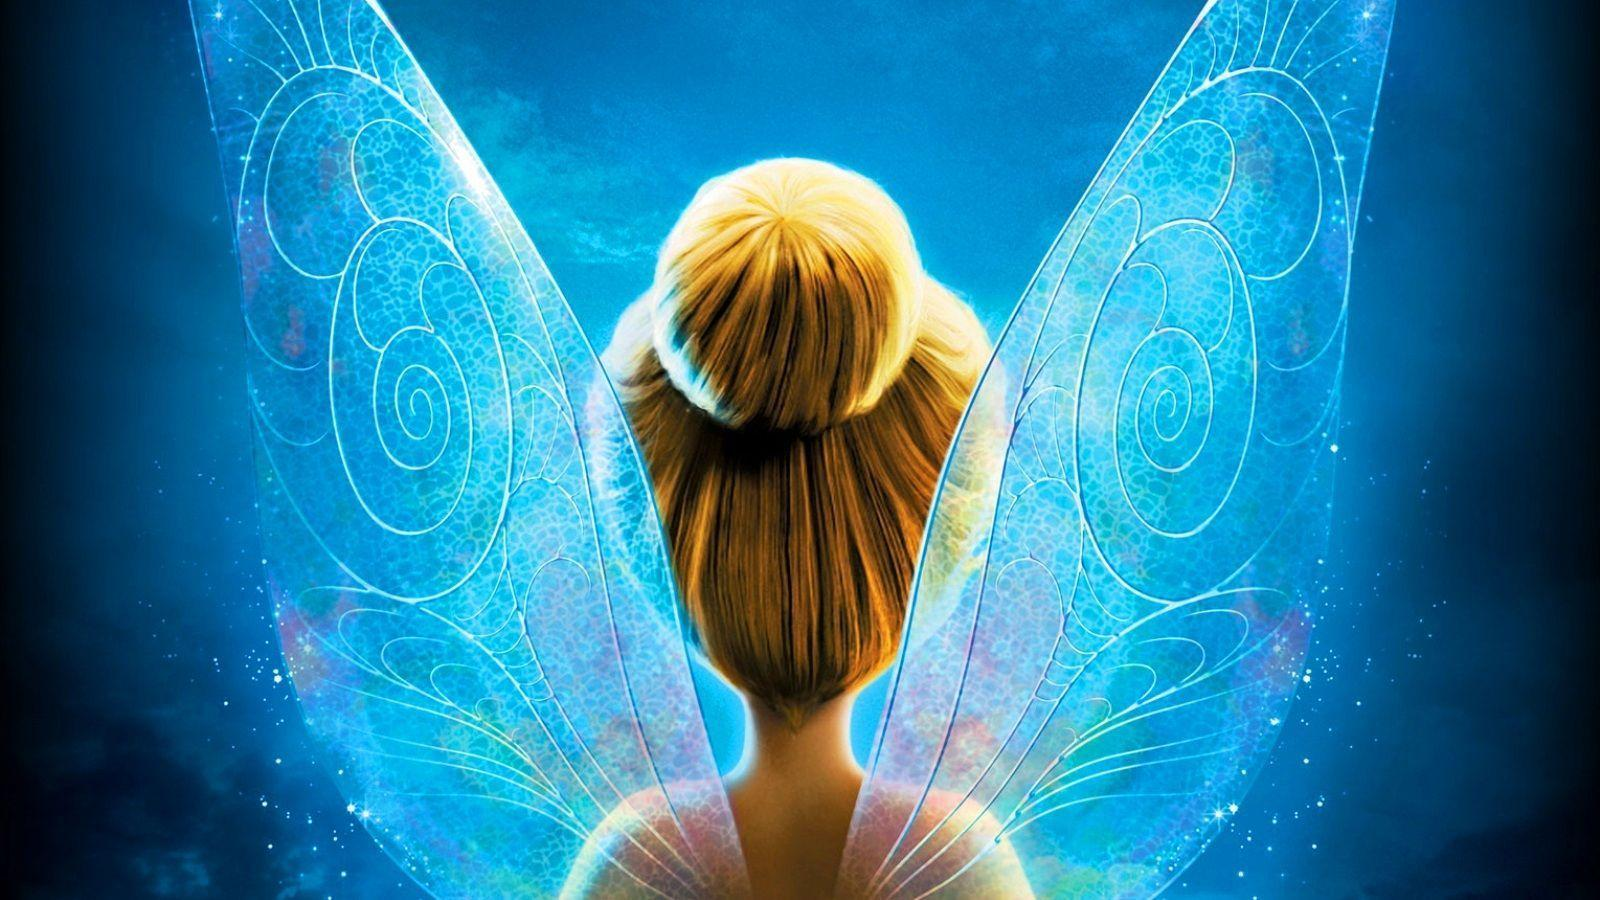 Tinkerbell Movie Wallpapers Wallpaper Cave